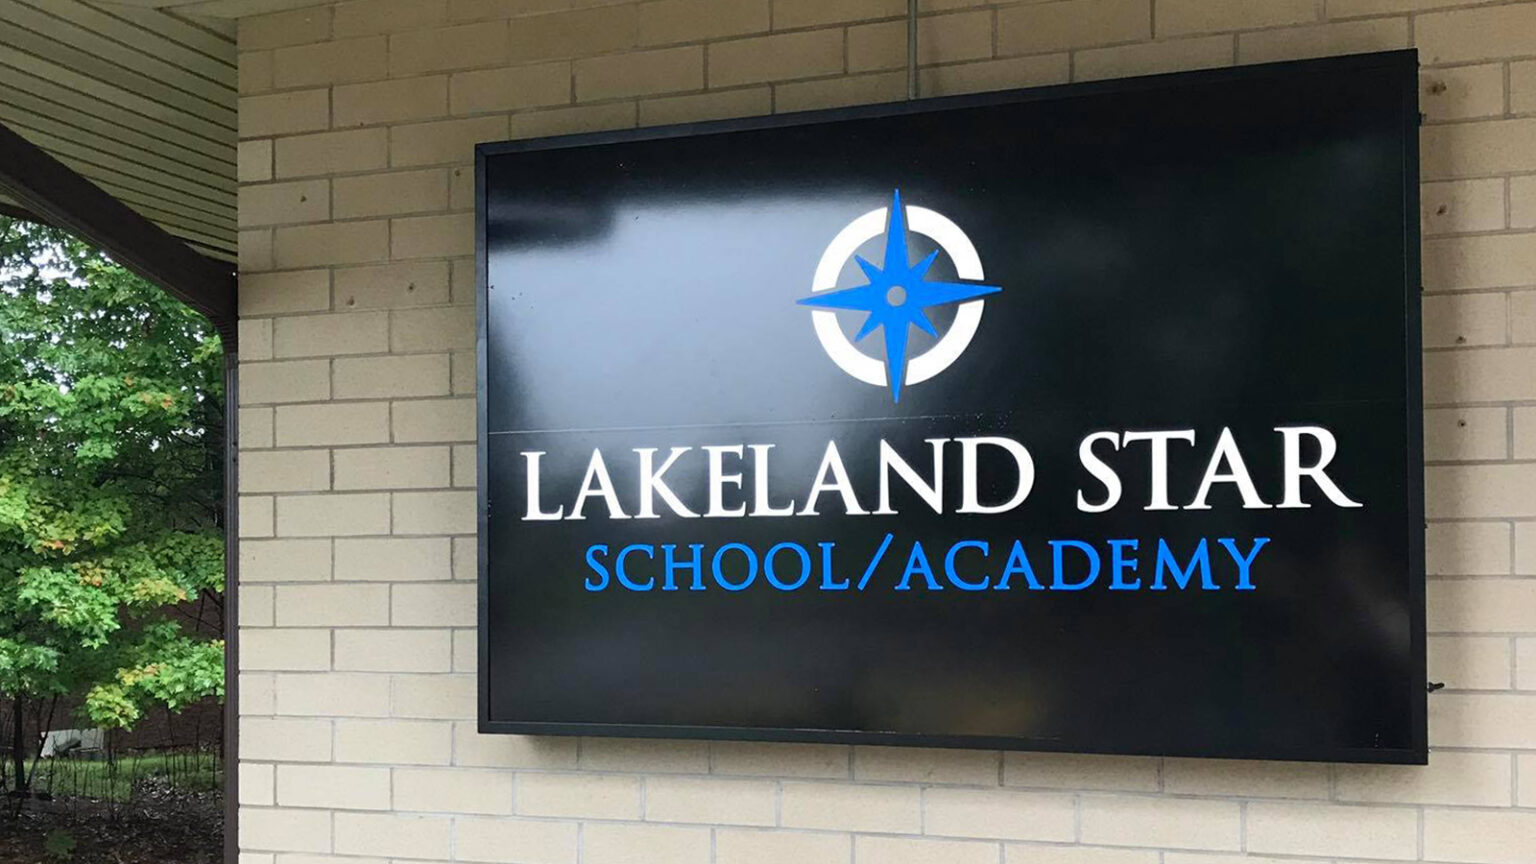 A sign for Lakeland STAR School/Academy on an exterior brick wall